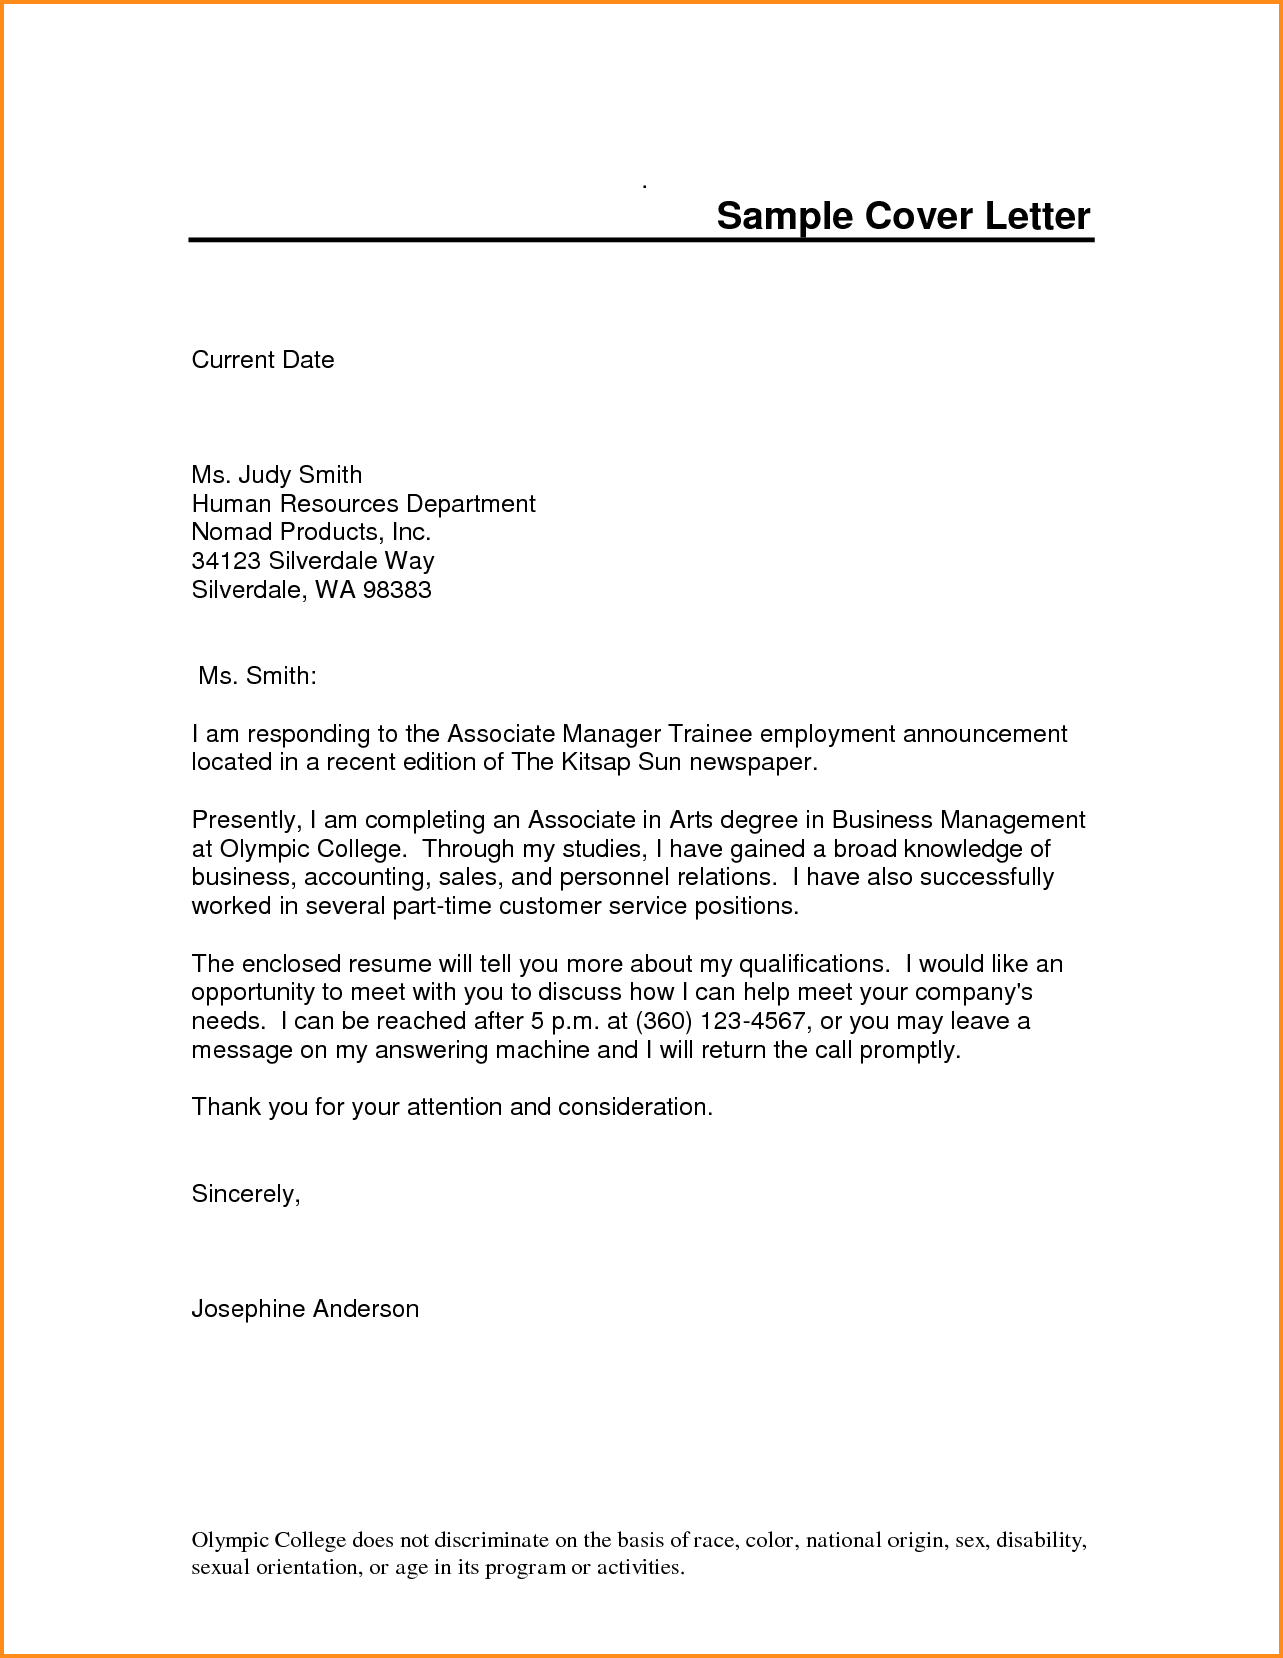 free cover letter template download resume general latex example pdf  Download resume  Resume